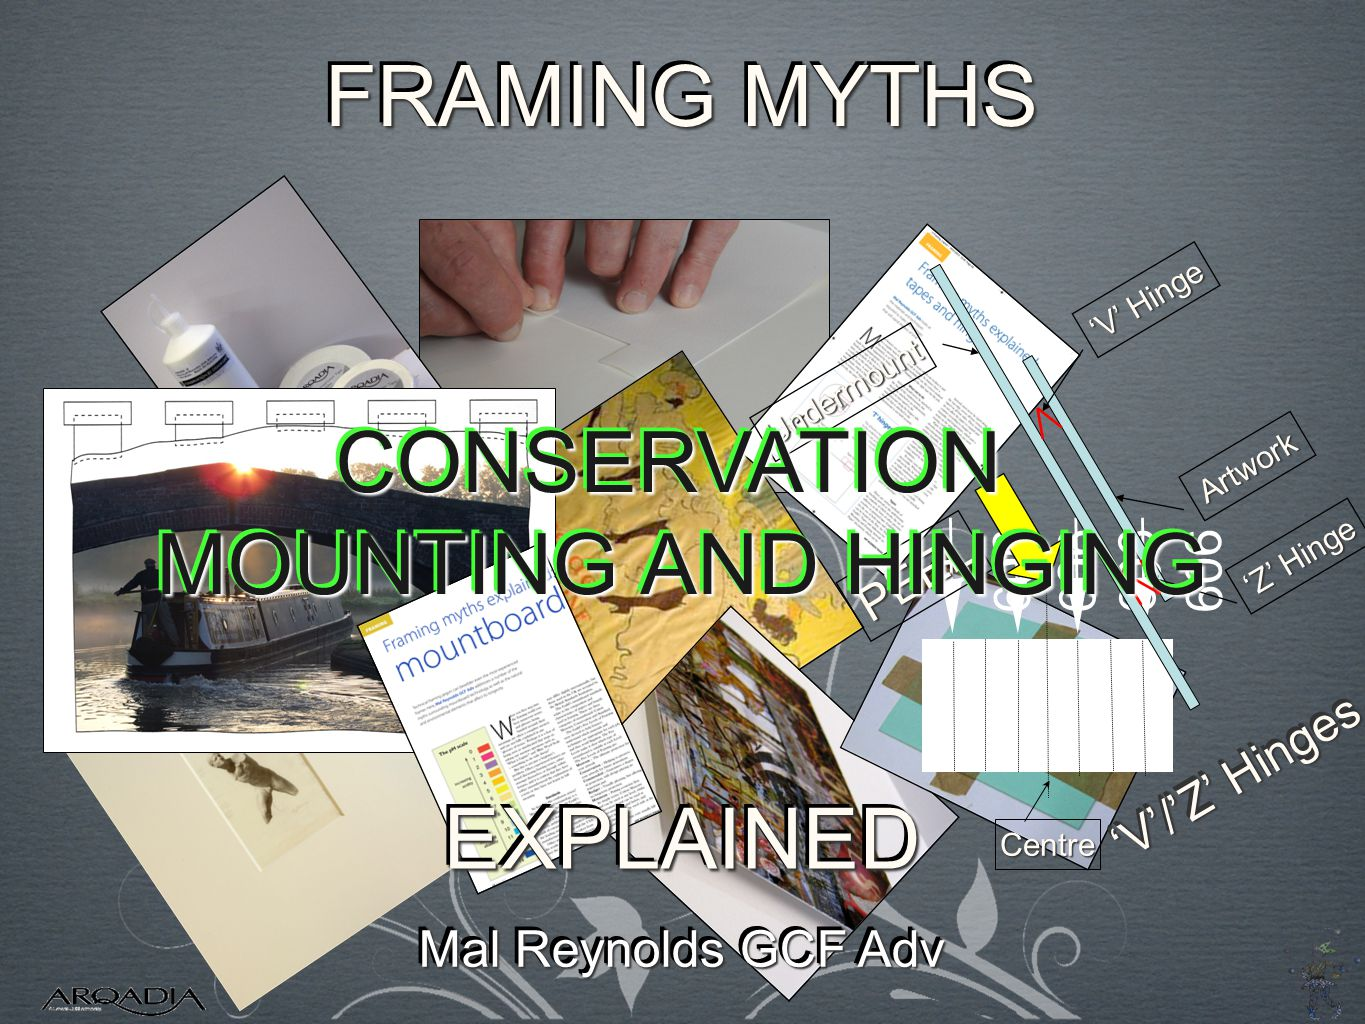 909 0 Centre Undermount PEEL V Hinge Artwork Z Hinge V/Z Hinges CONSERVATION MOUNTING AND HINGING CONSERVATION FRAMING MYTHS Mal Reynolds GCF Adv EXPLAINEDEXPLAINED